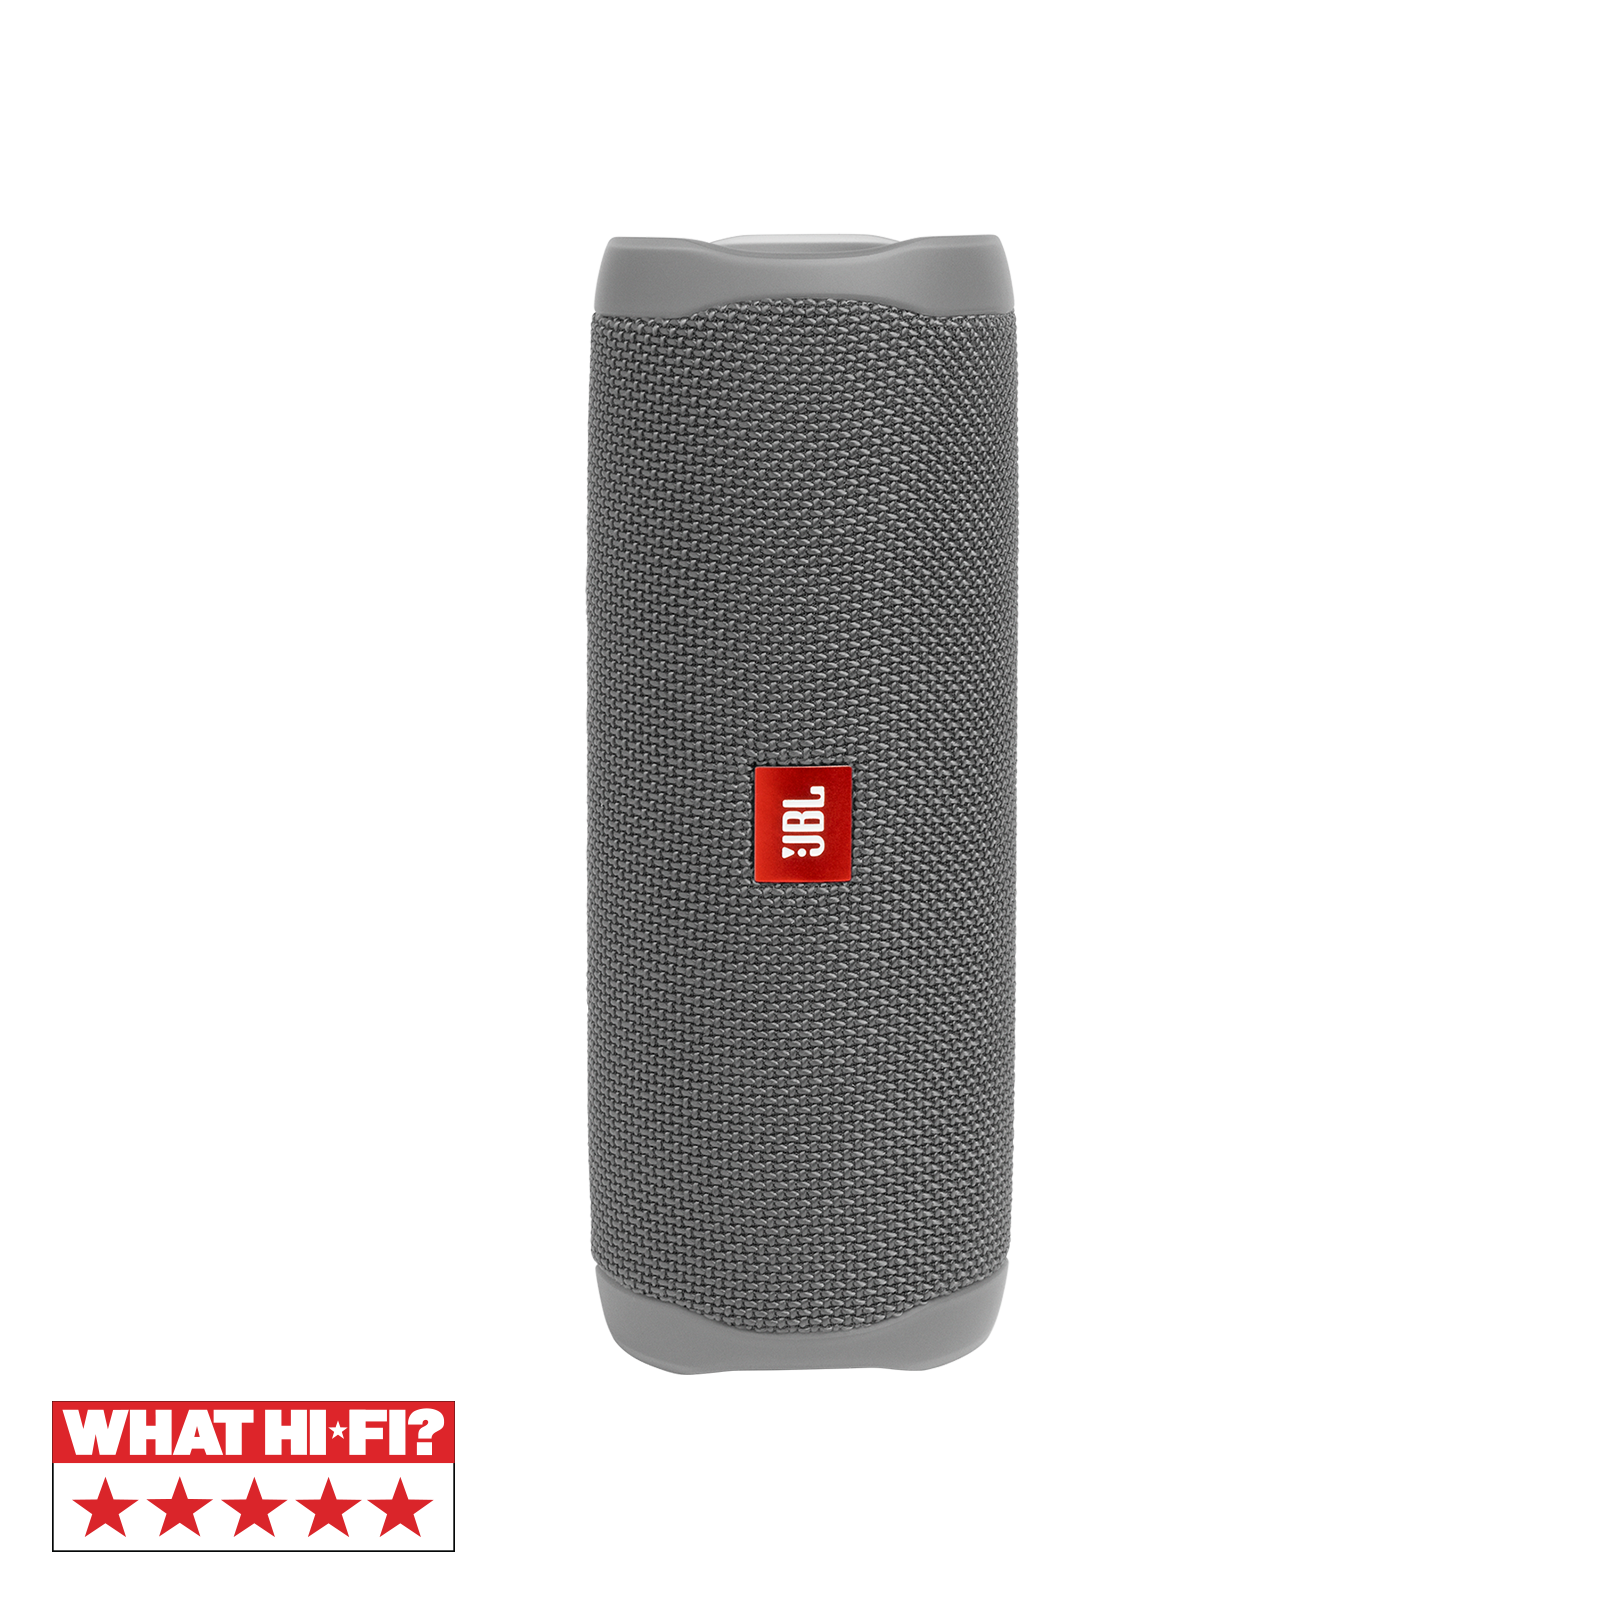 JBL FLIP 5 - Grey - Portable Waterproof Speaker - Hero